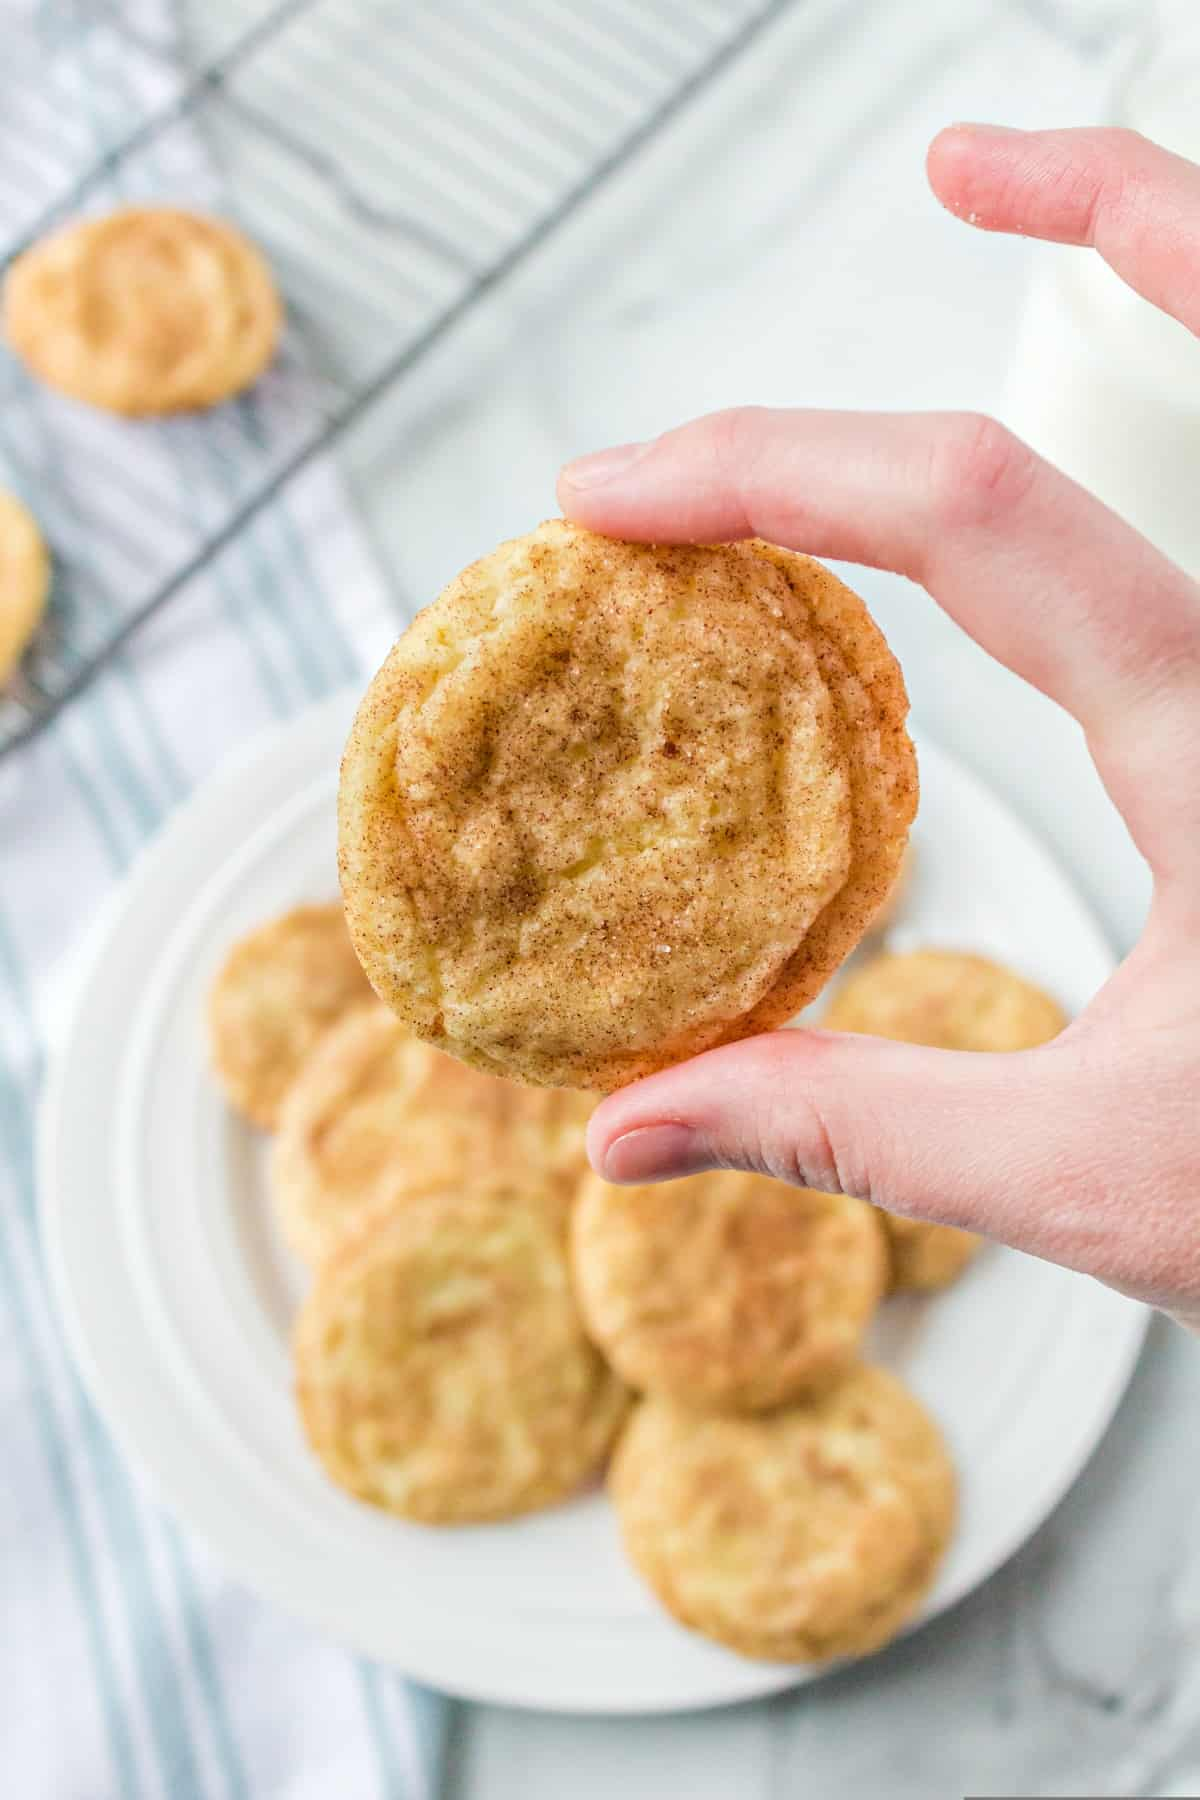 Hand holding snickerdoodle cookie above a plate of cookies.